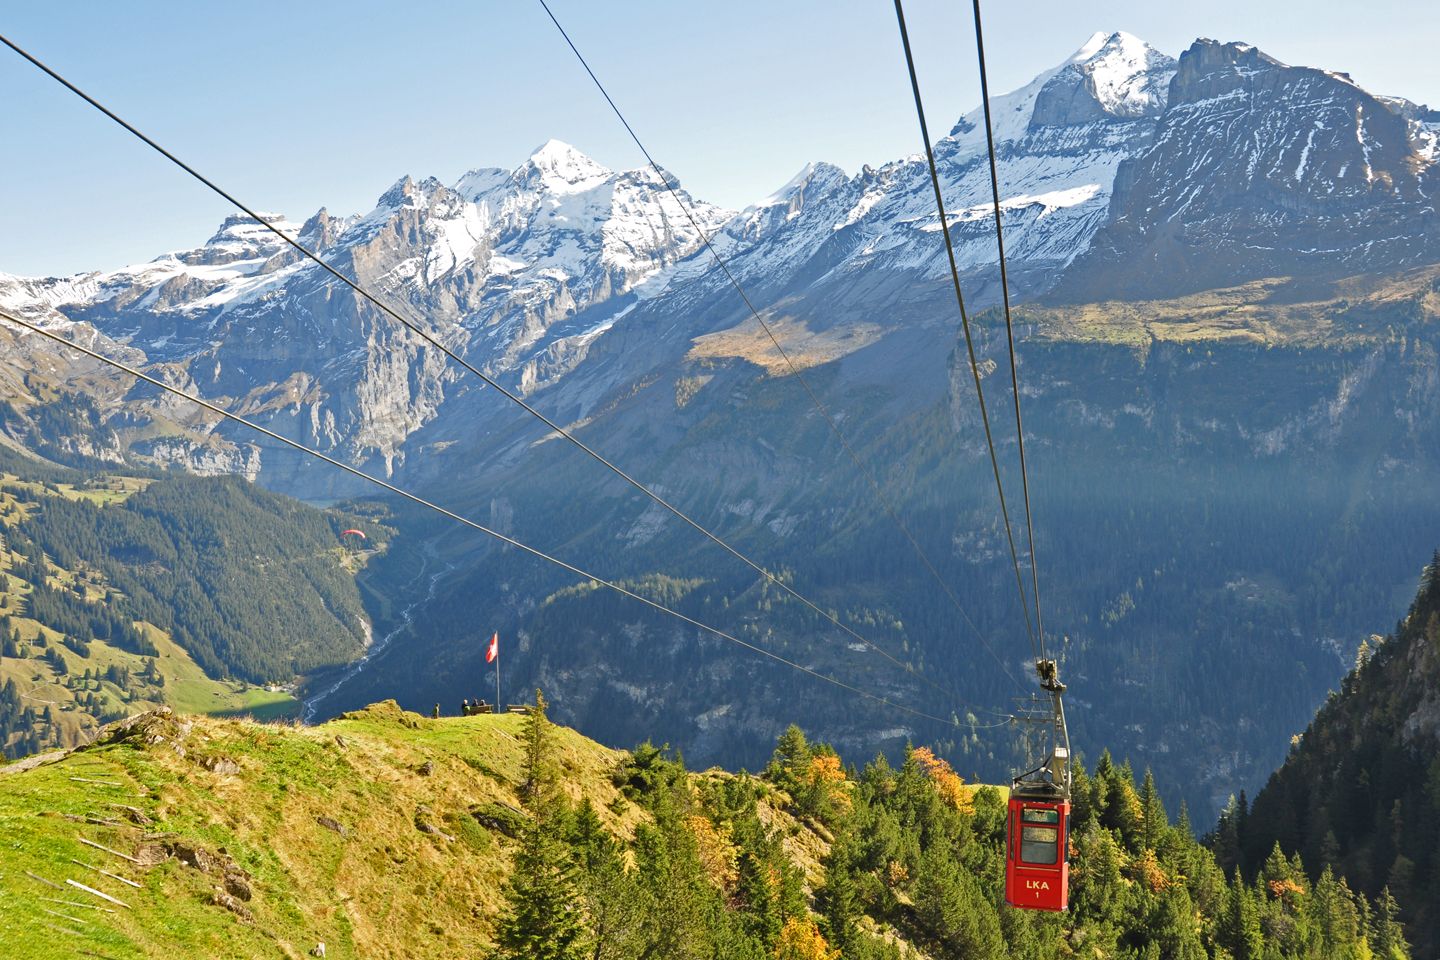 The tiny cable car to the Allmenalp above Kandersteg